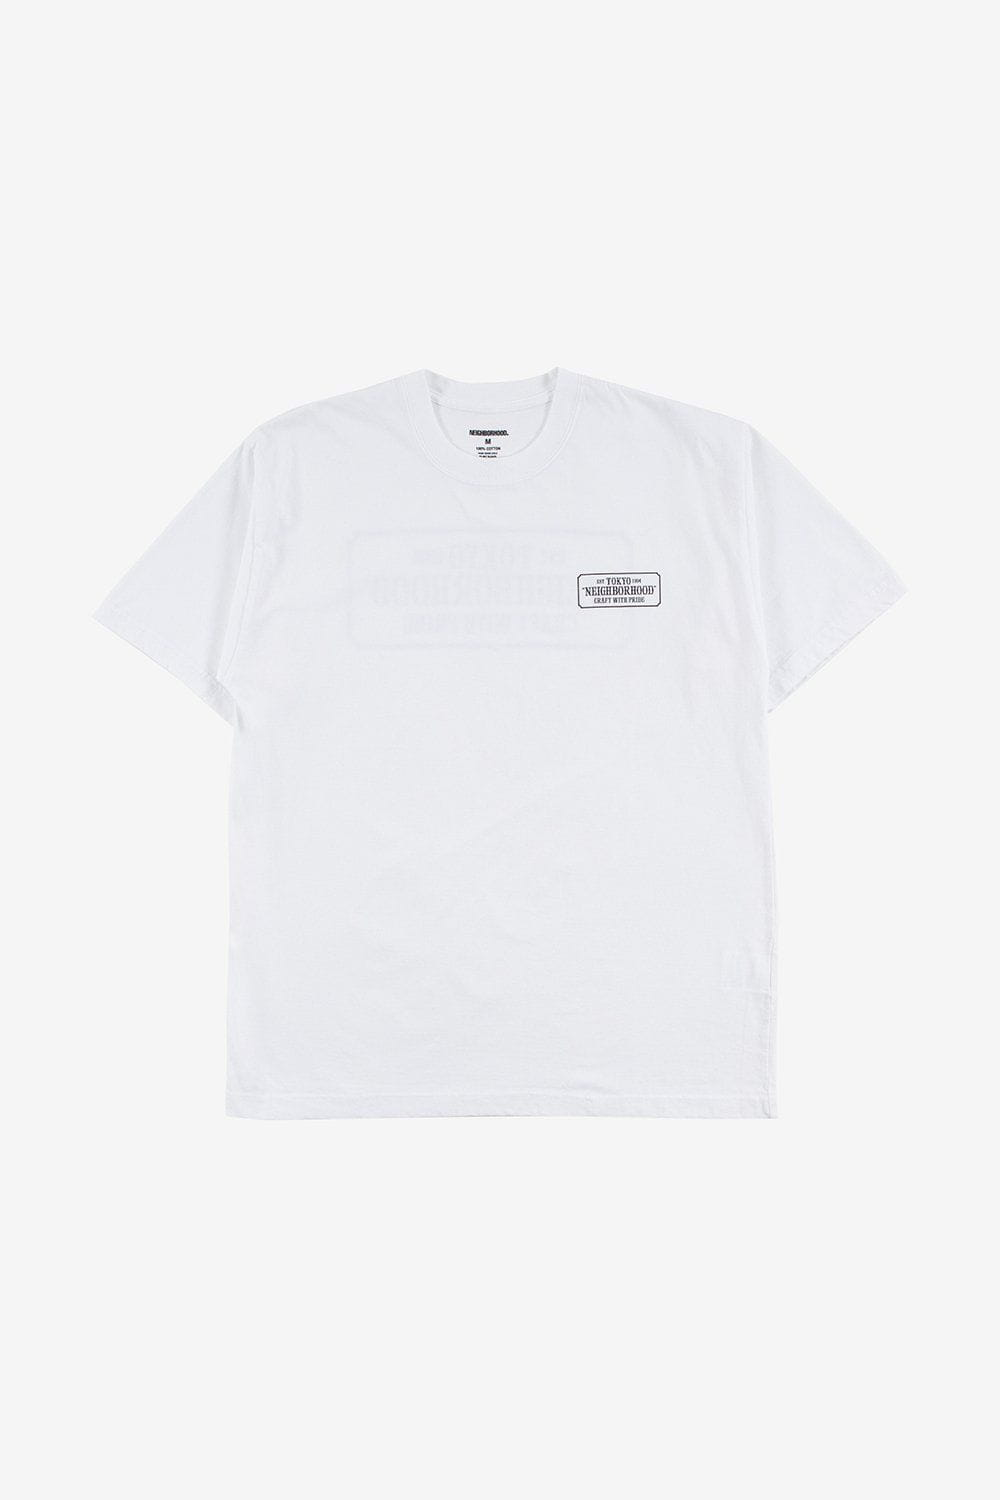 Neighborhood Apparel Bar & Shield Tee White